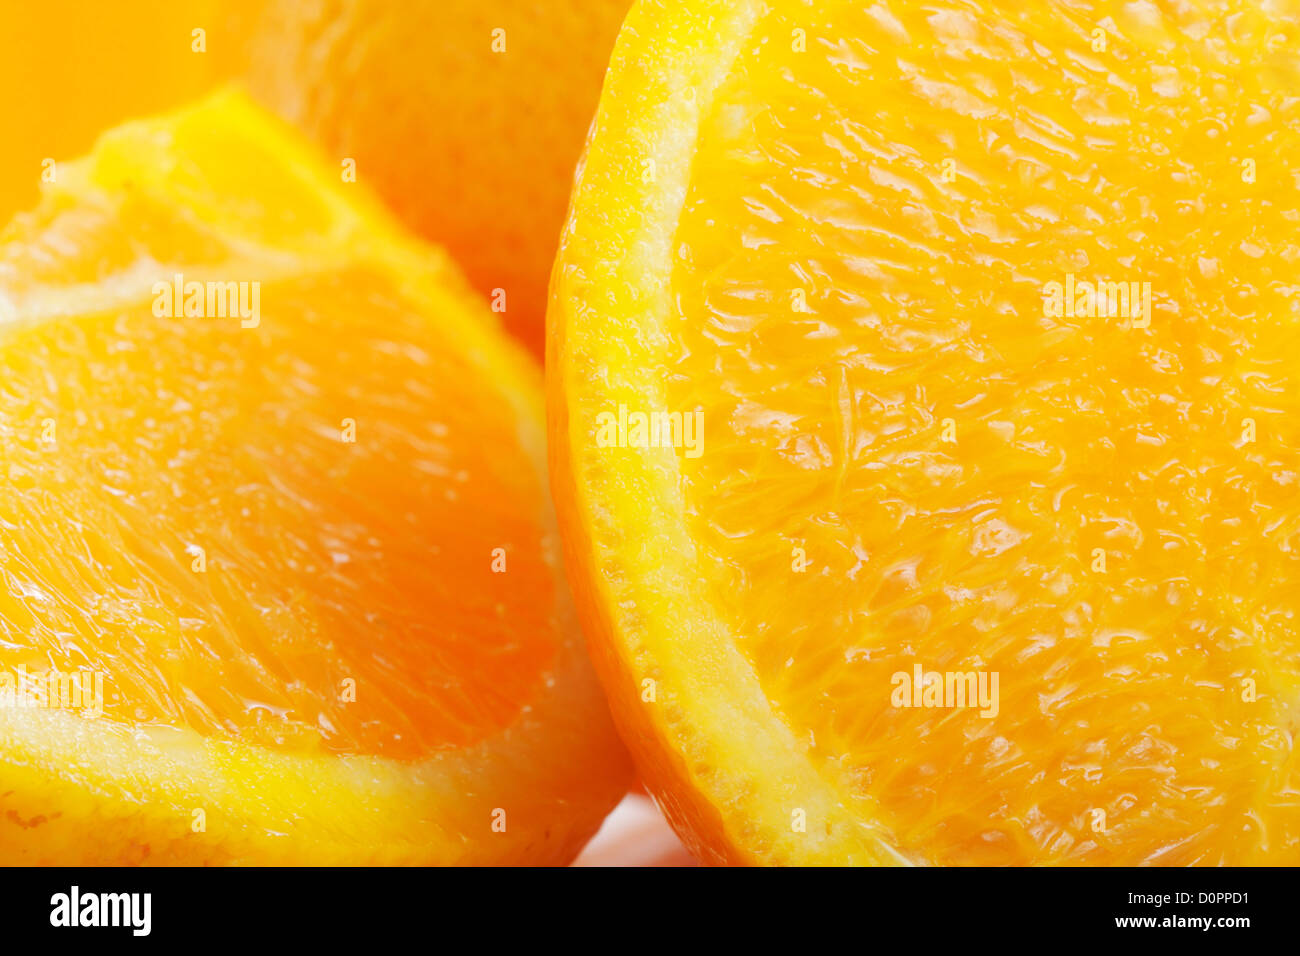 Cut oranges - Stock Image